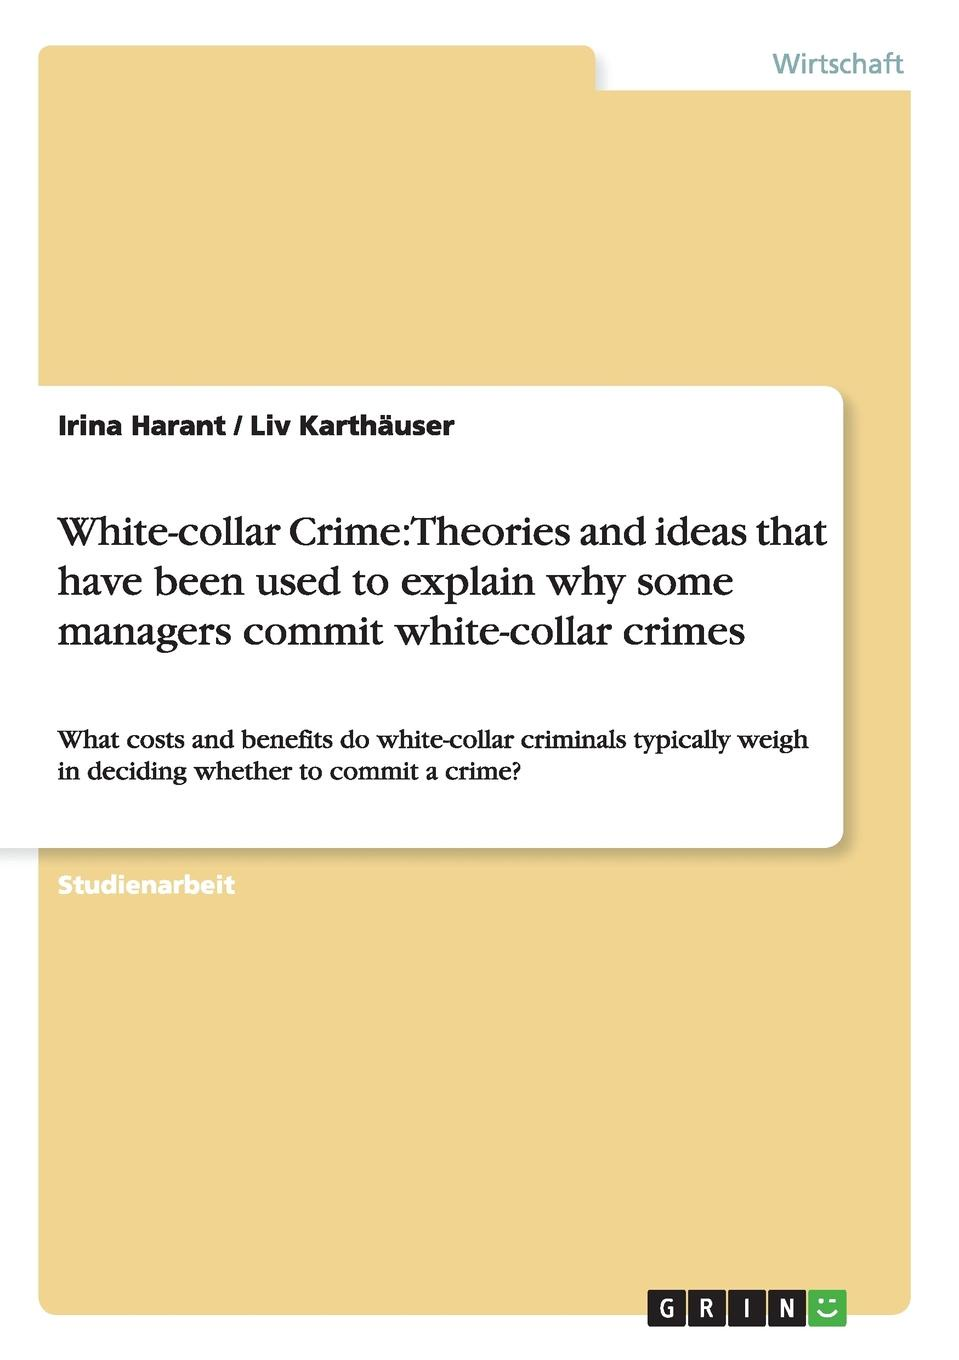 Фото - Irina Harant, Liv Karthäuser White-collar Crime. Theories and ideas that have been used to explain why some managers commit white-collar crimes white colander crime